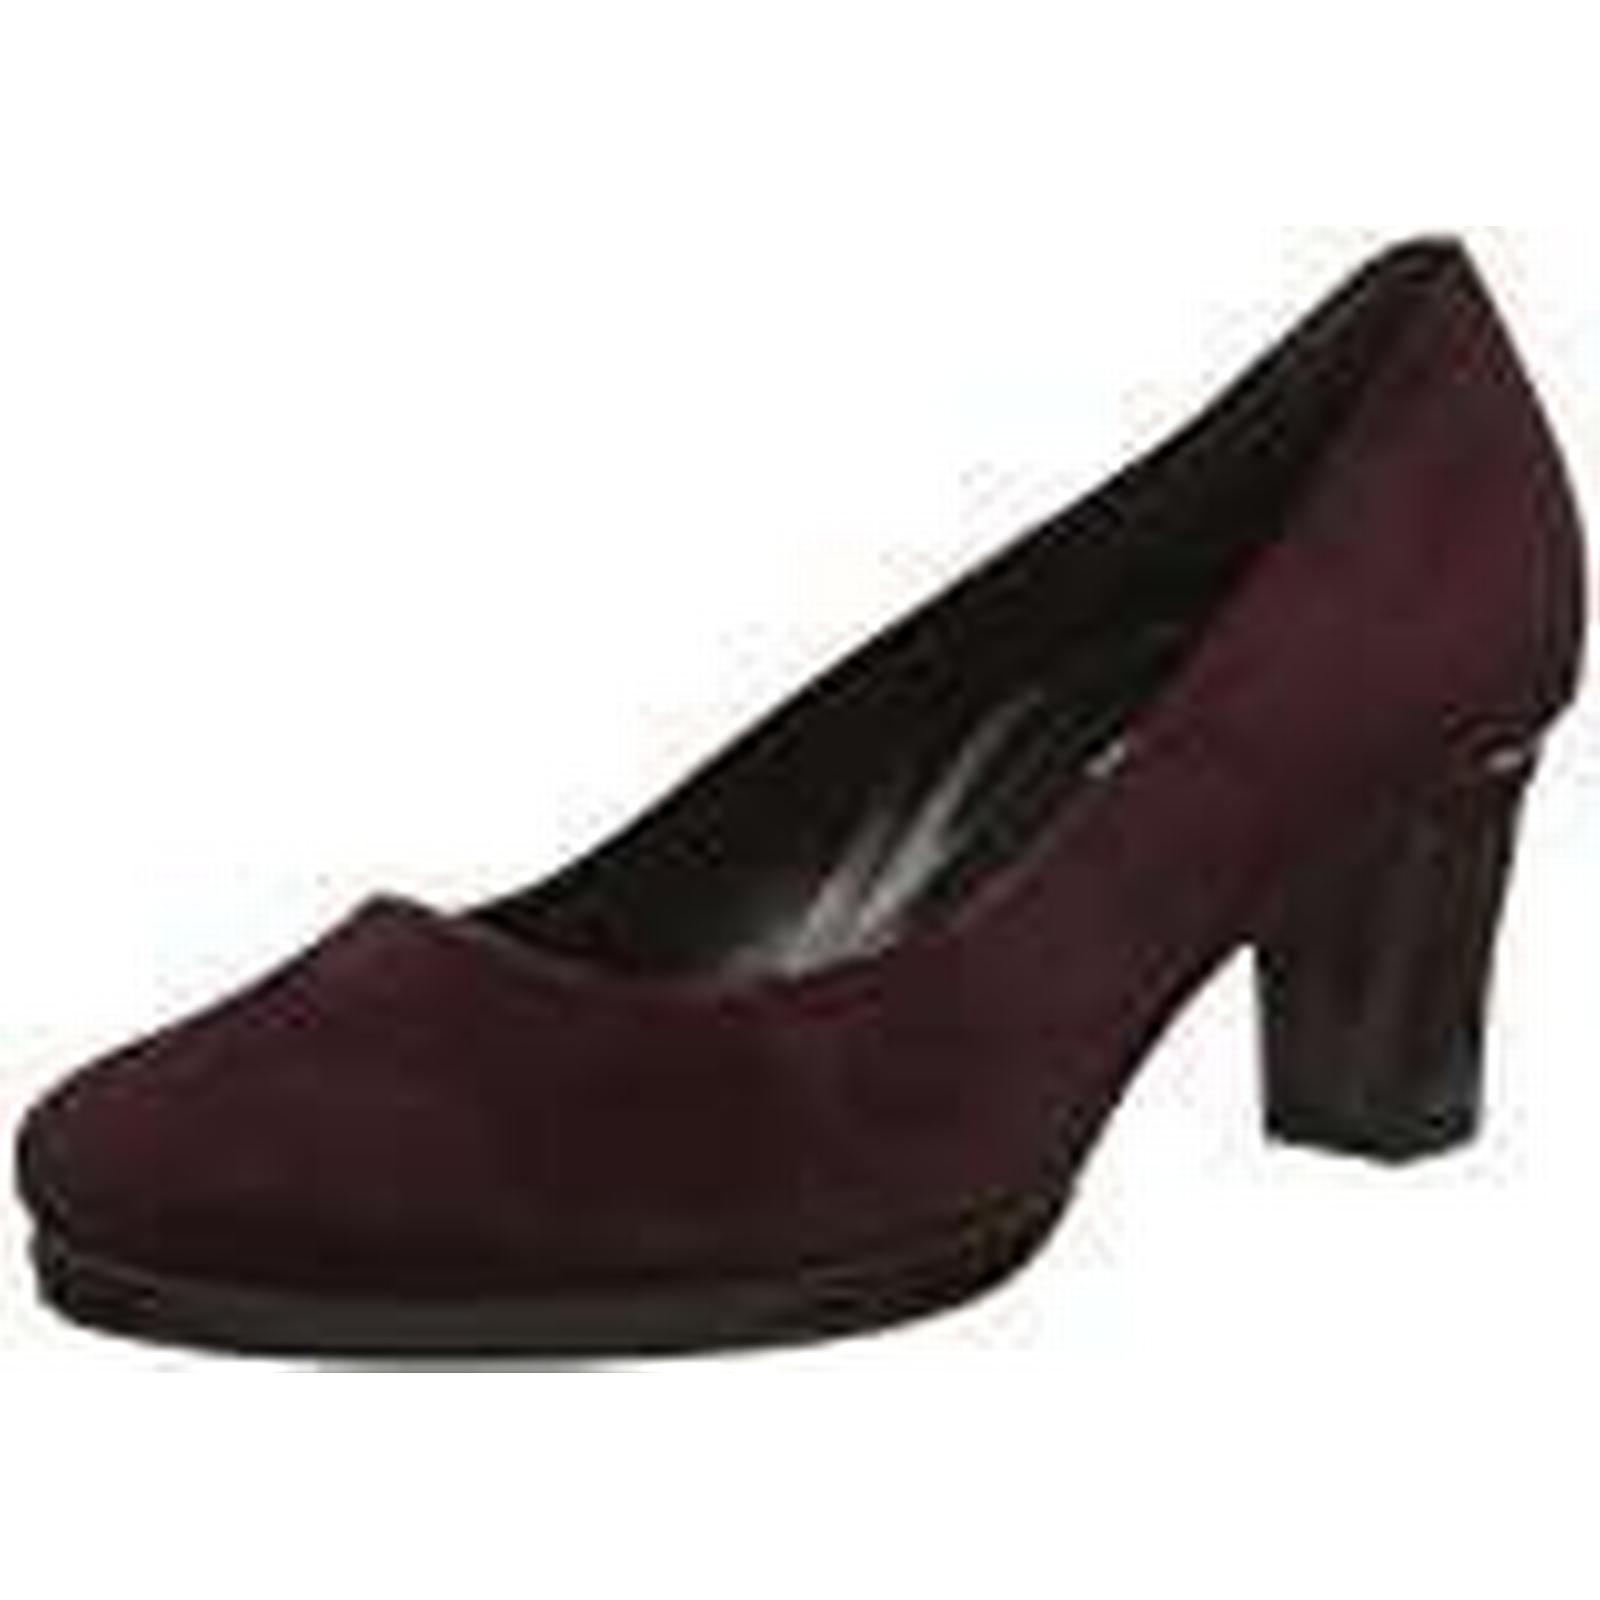 Gabor Women's Comfort Fashion Closed Toe Heels, Red UK (New Merlot 48), 4.5 UK Red 06e1a7